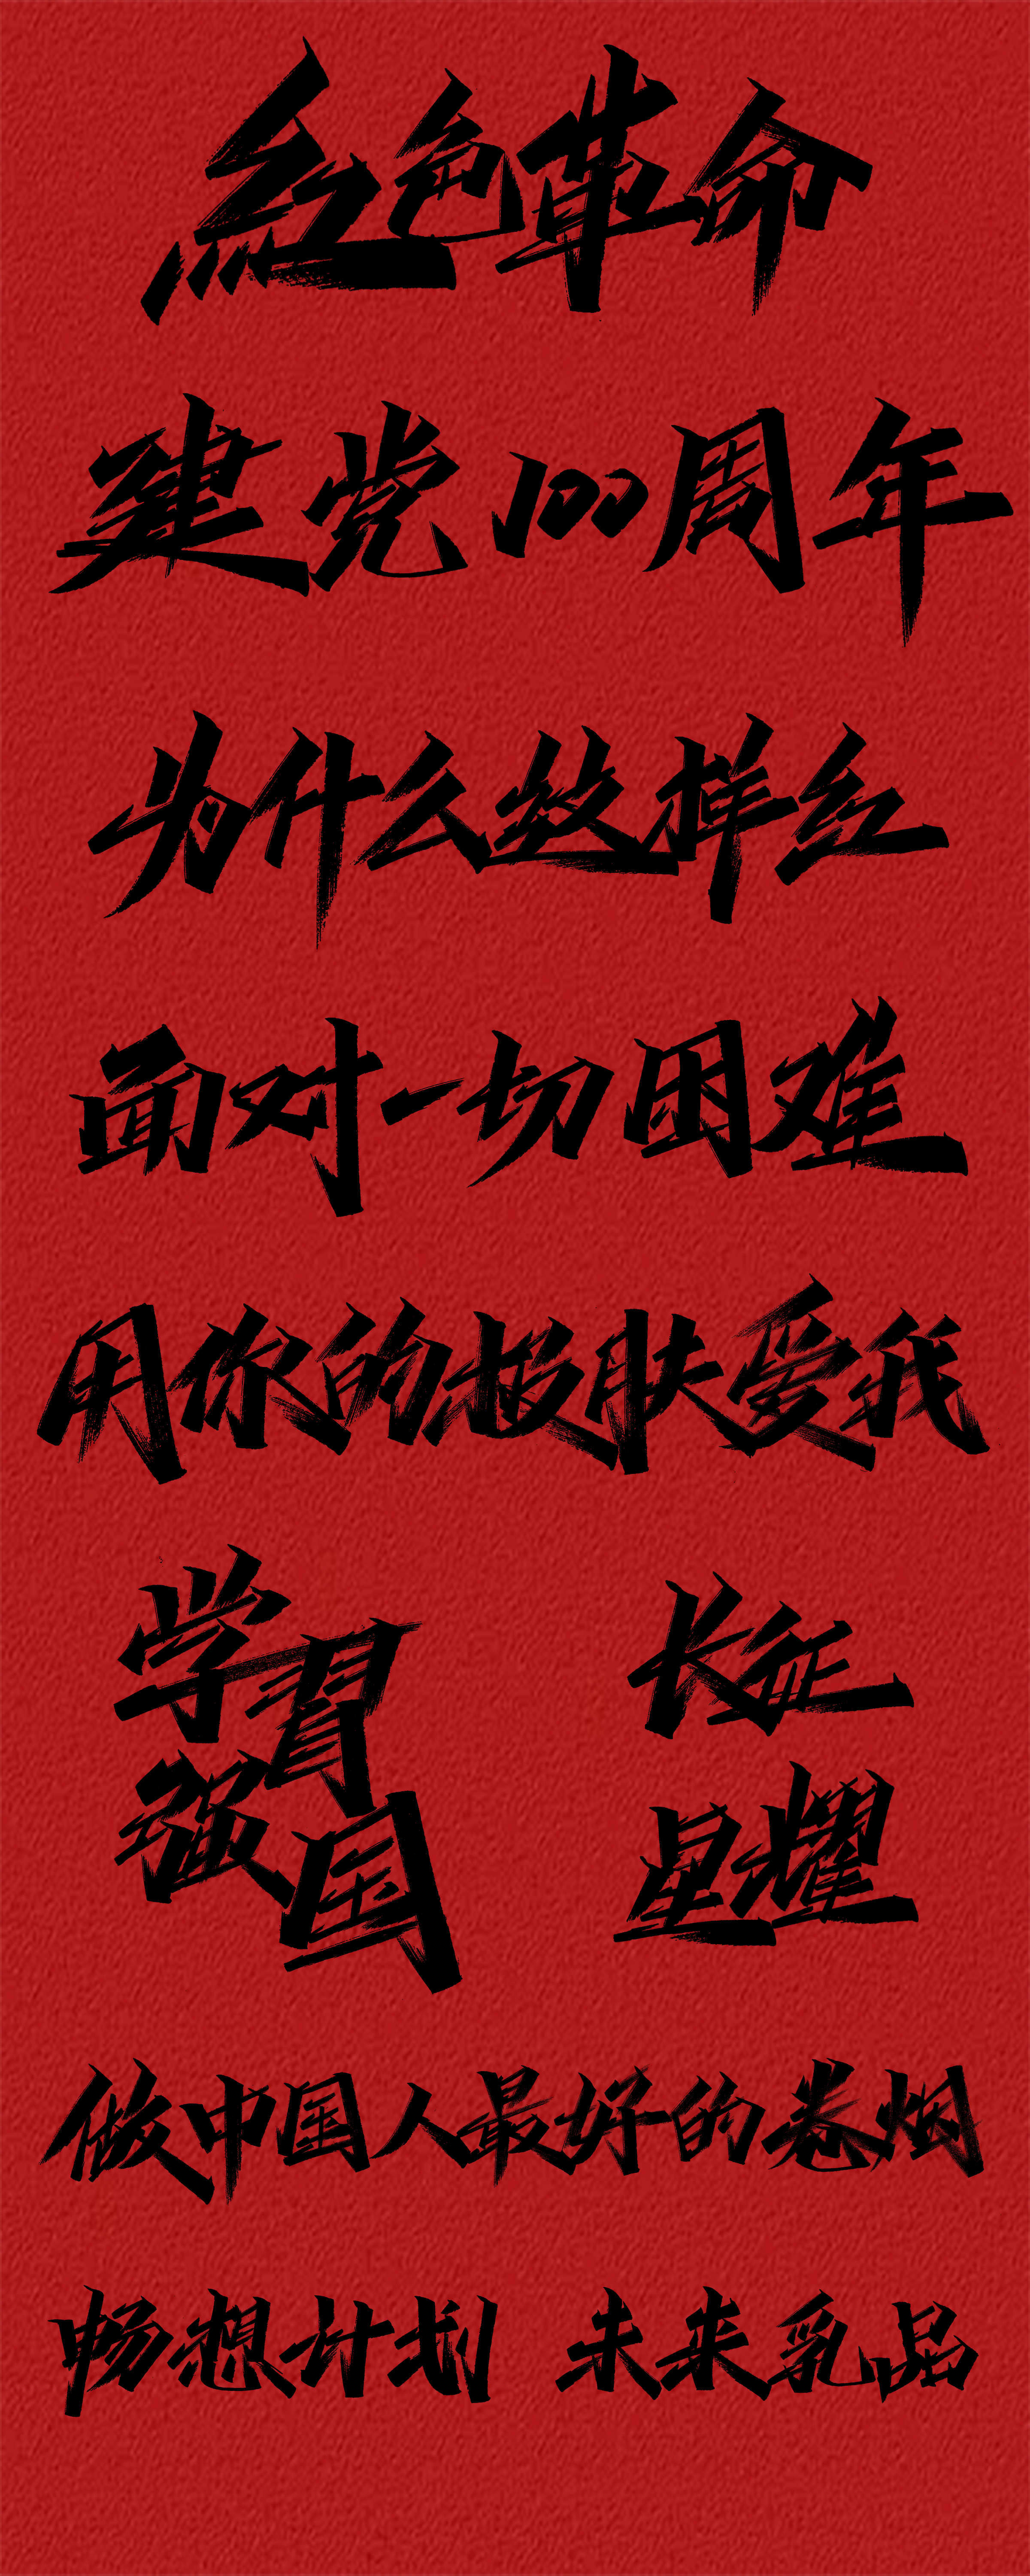 3P Collection of the latest Chinese font design schemes in 2021 #.106